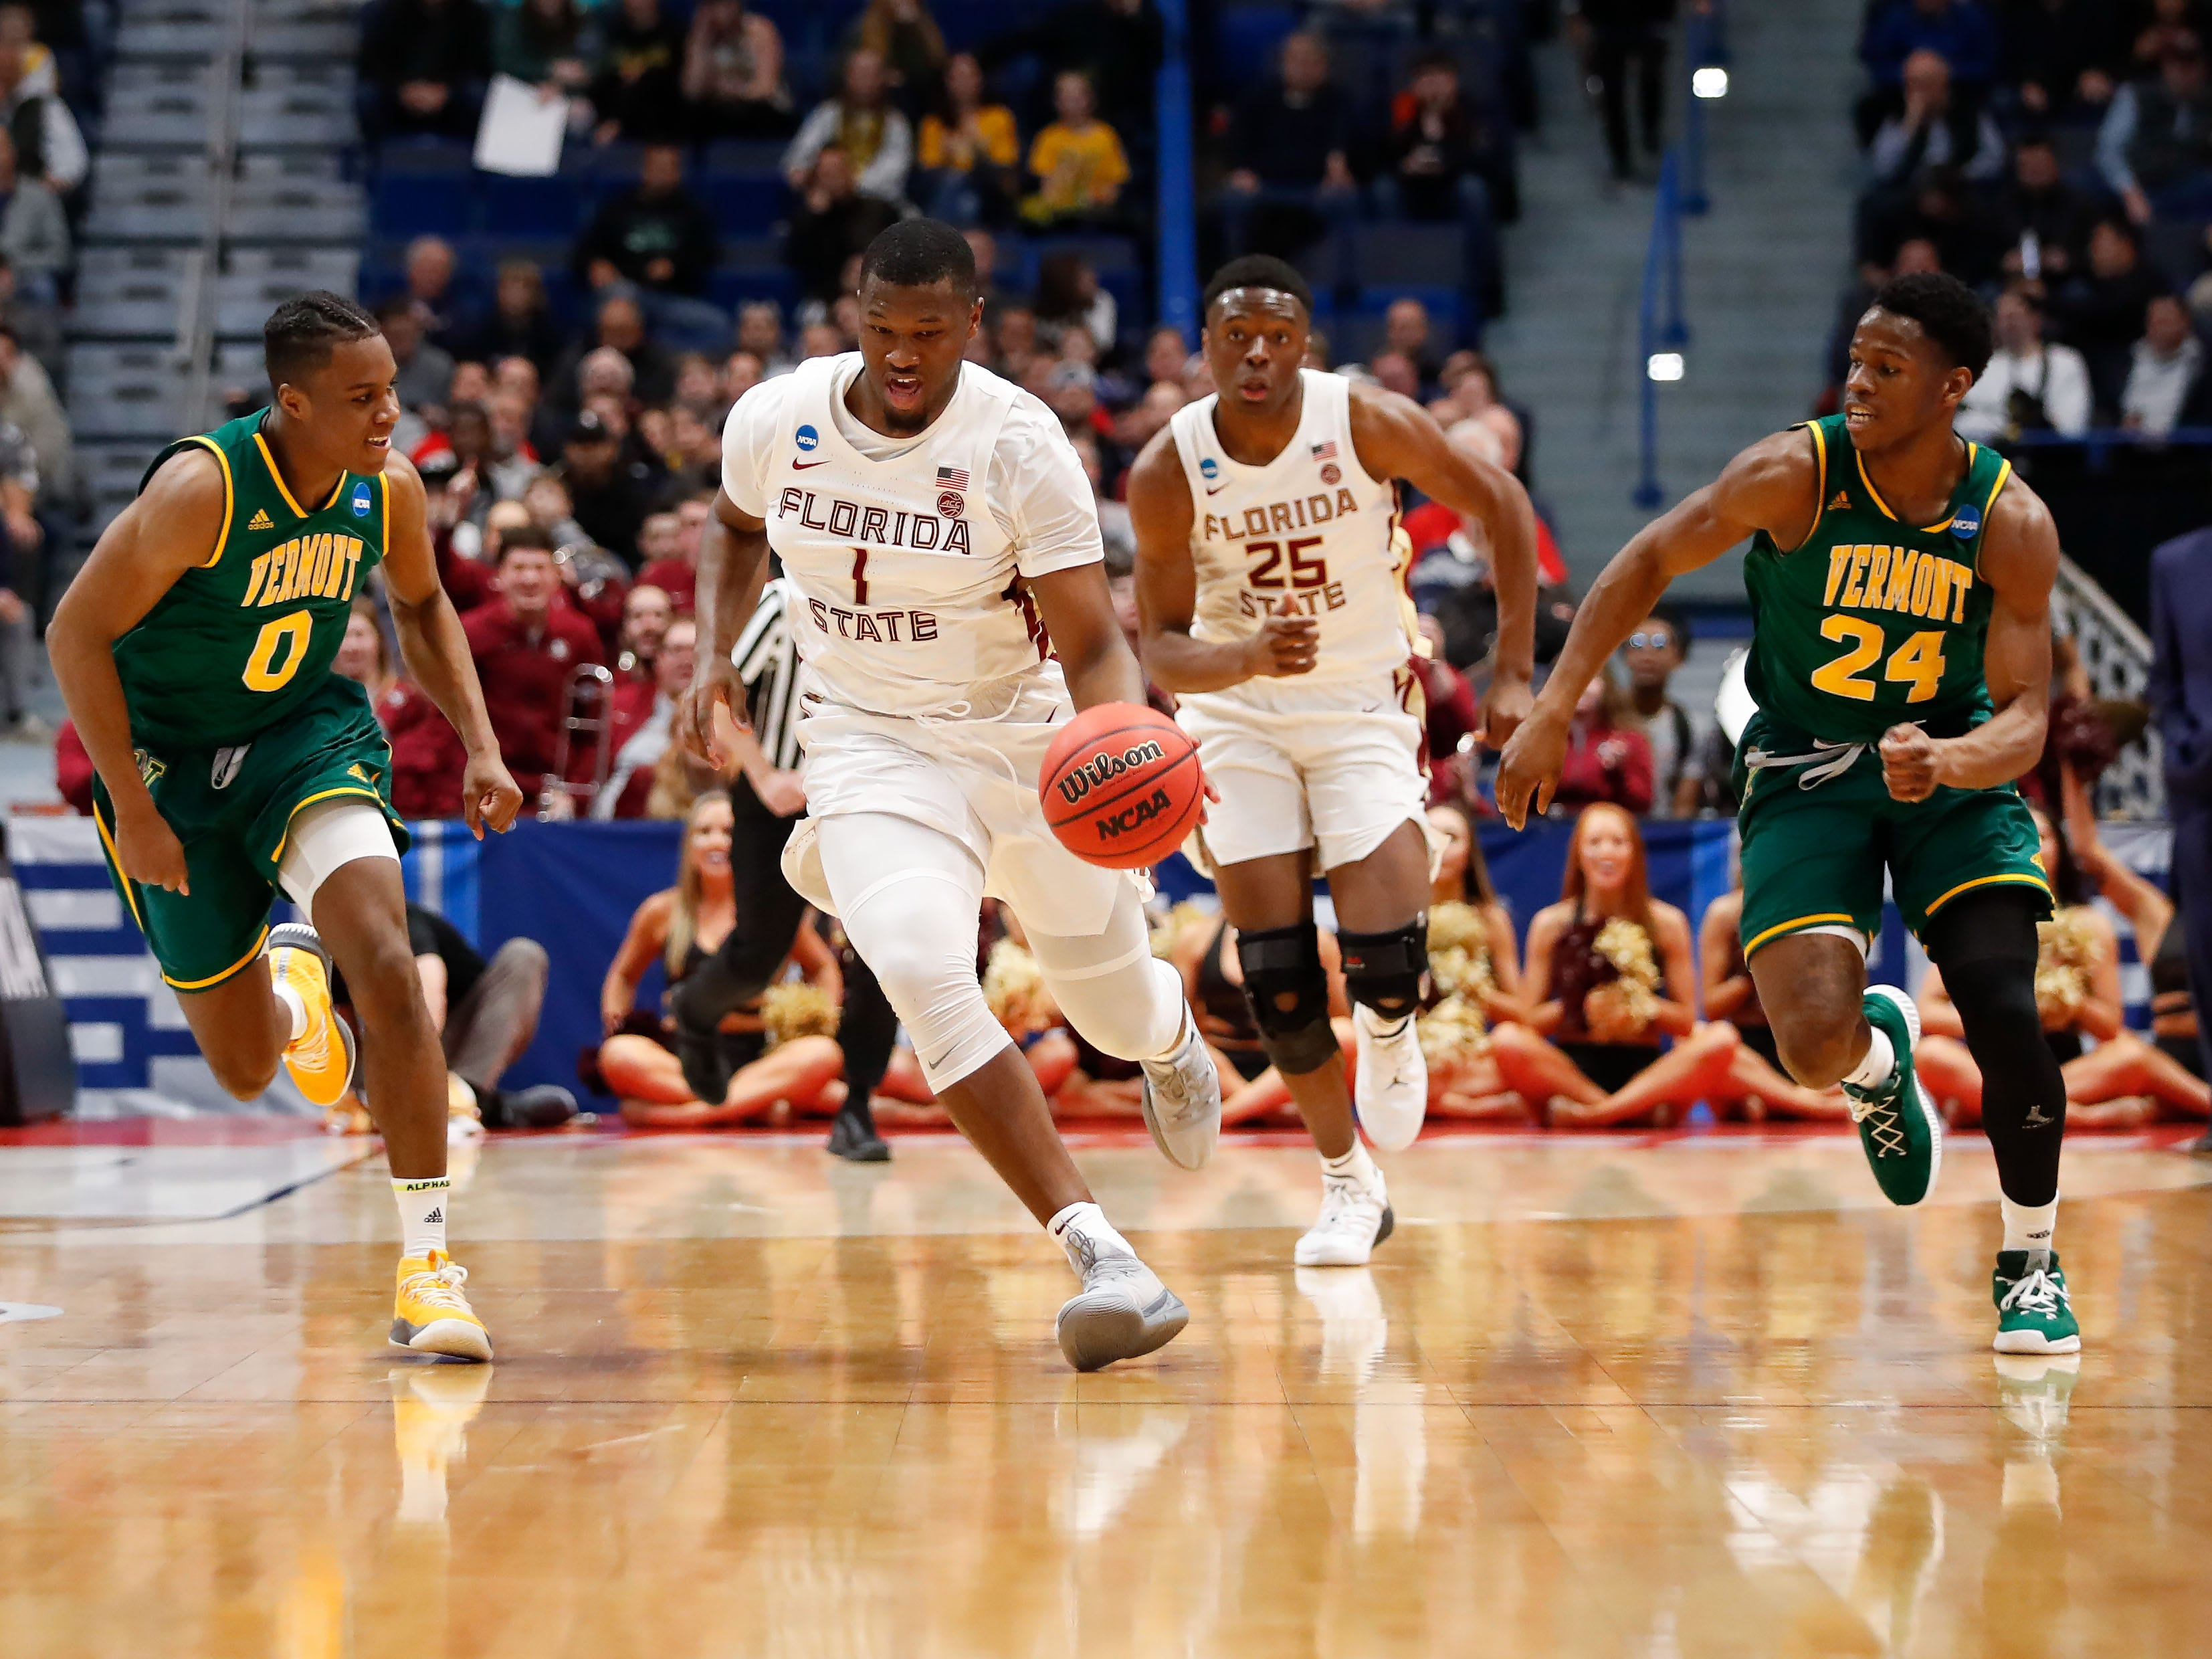 Mar 21, 2019; Hartford, CT, USA; Florida State Seminoles forward Raiquan Gray (1) dribbles the ball up the court during the first half of a game against the Vermont Catamounts in the first round of the 2019 NCAA Tournament at XL Center. Mandatory Credit: David Butler II-USA TODAY Sports